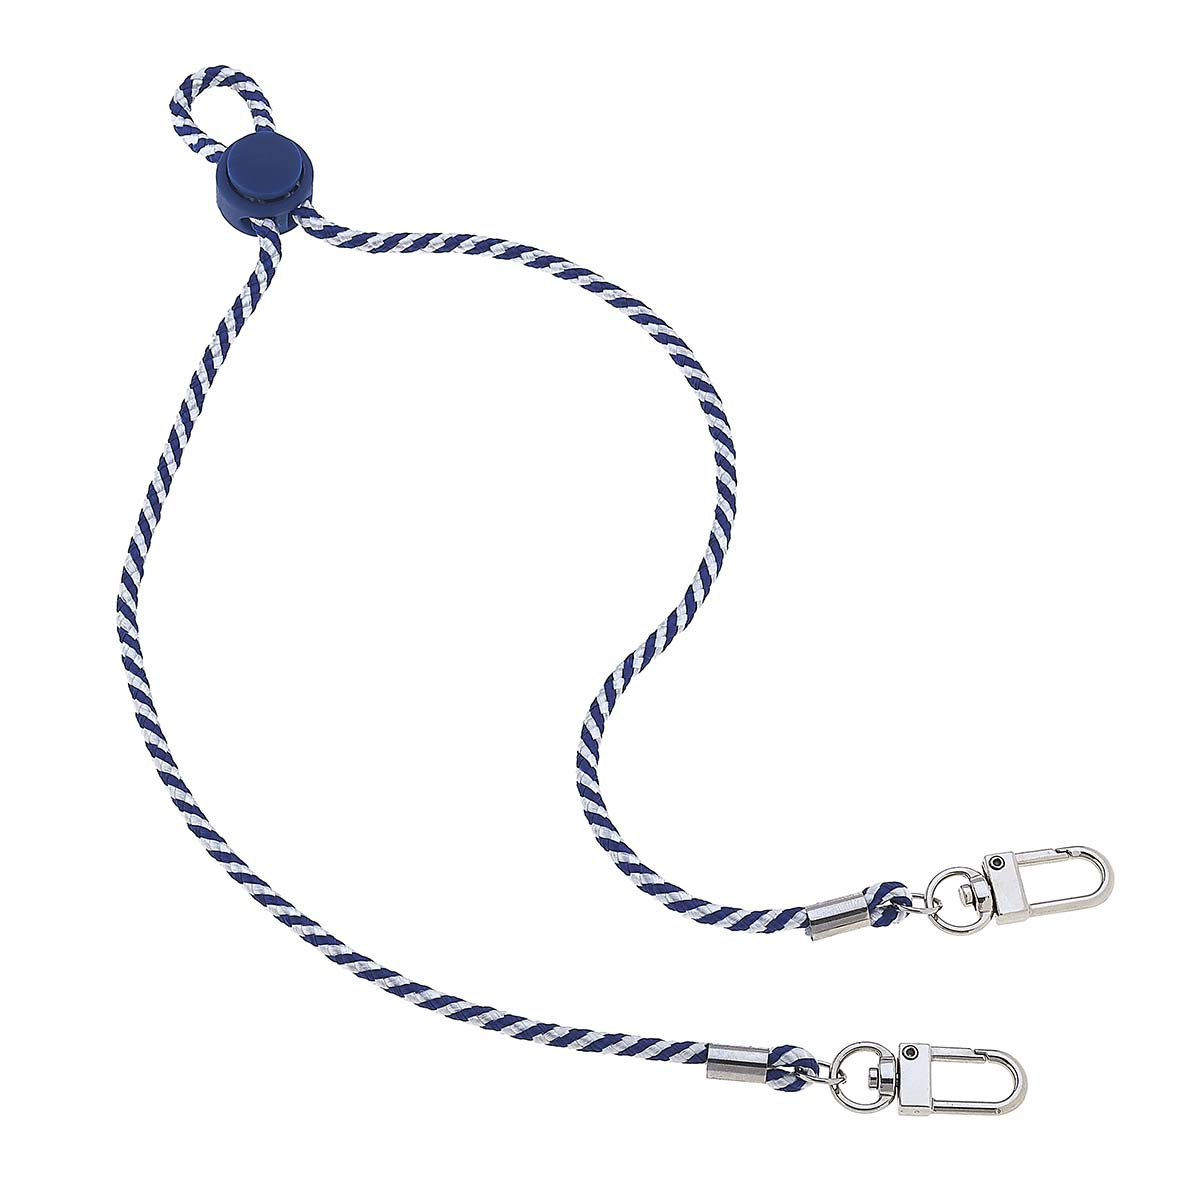 Ethan Men's Cord Mask Lanyard in Navy and White